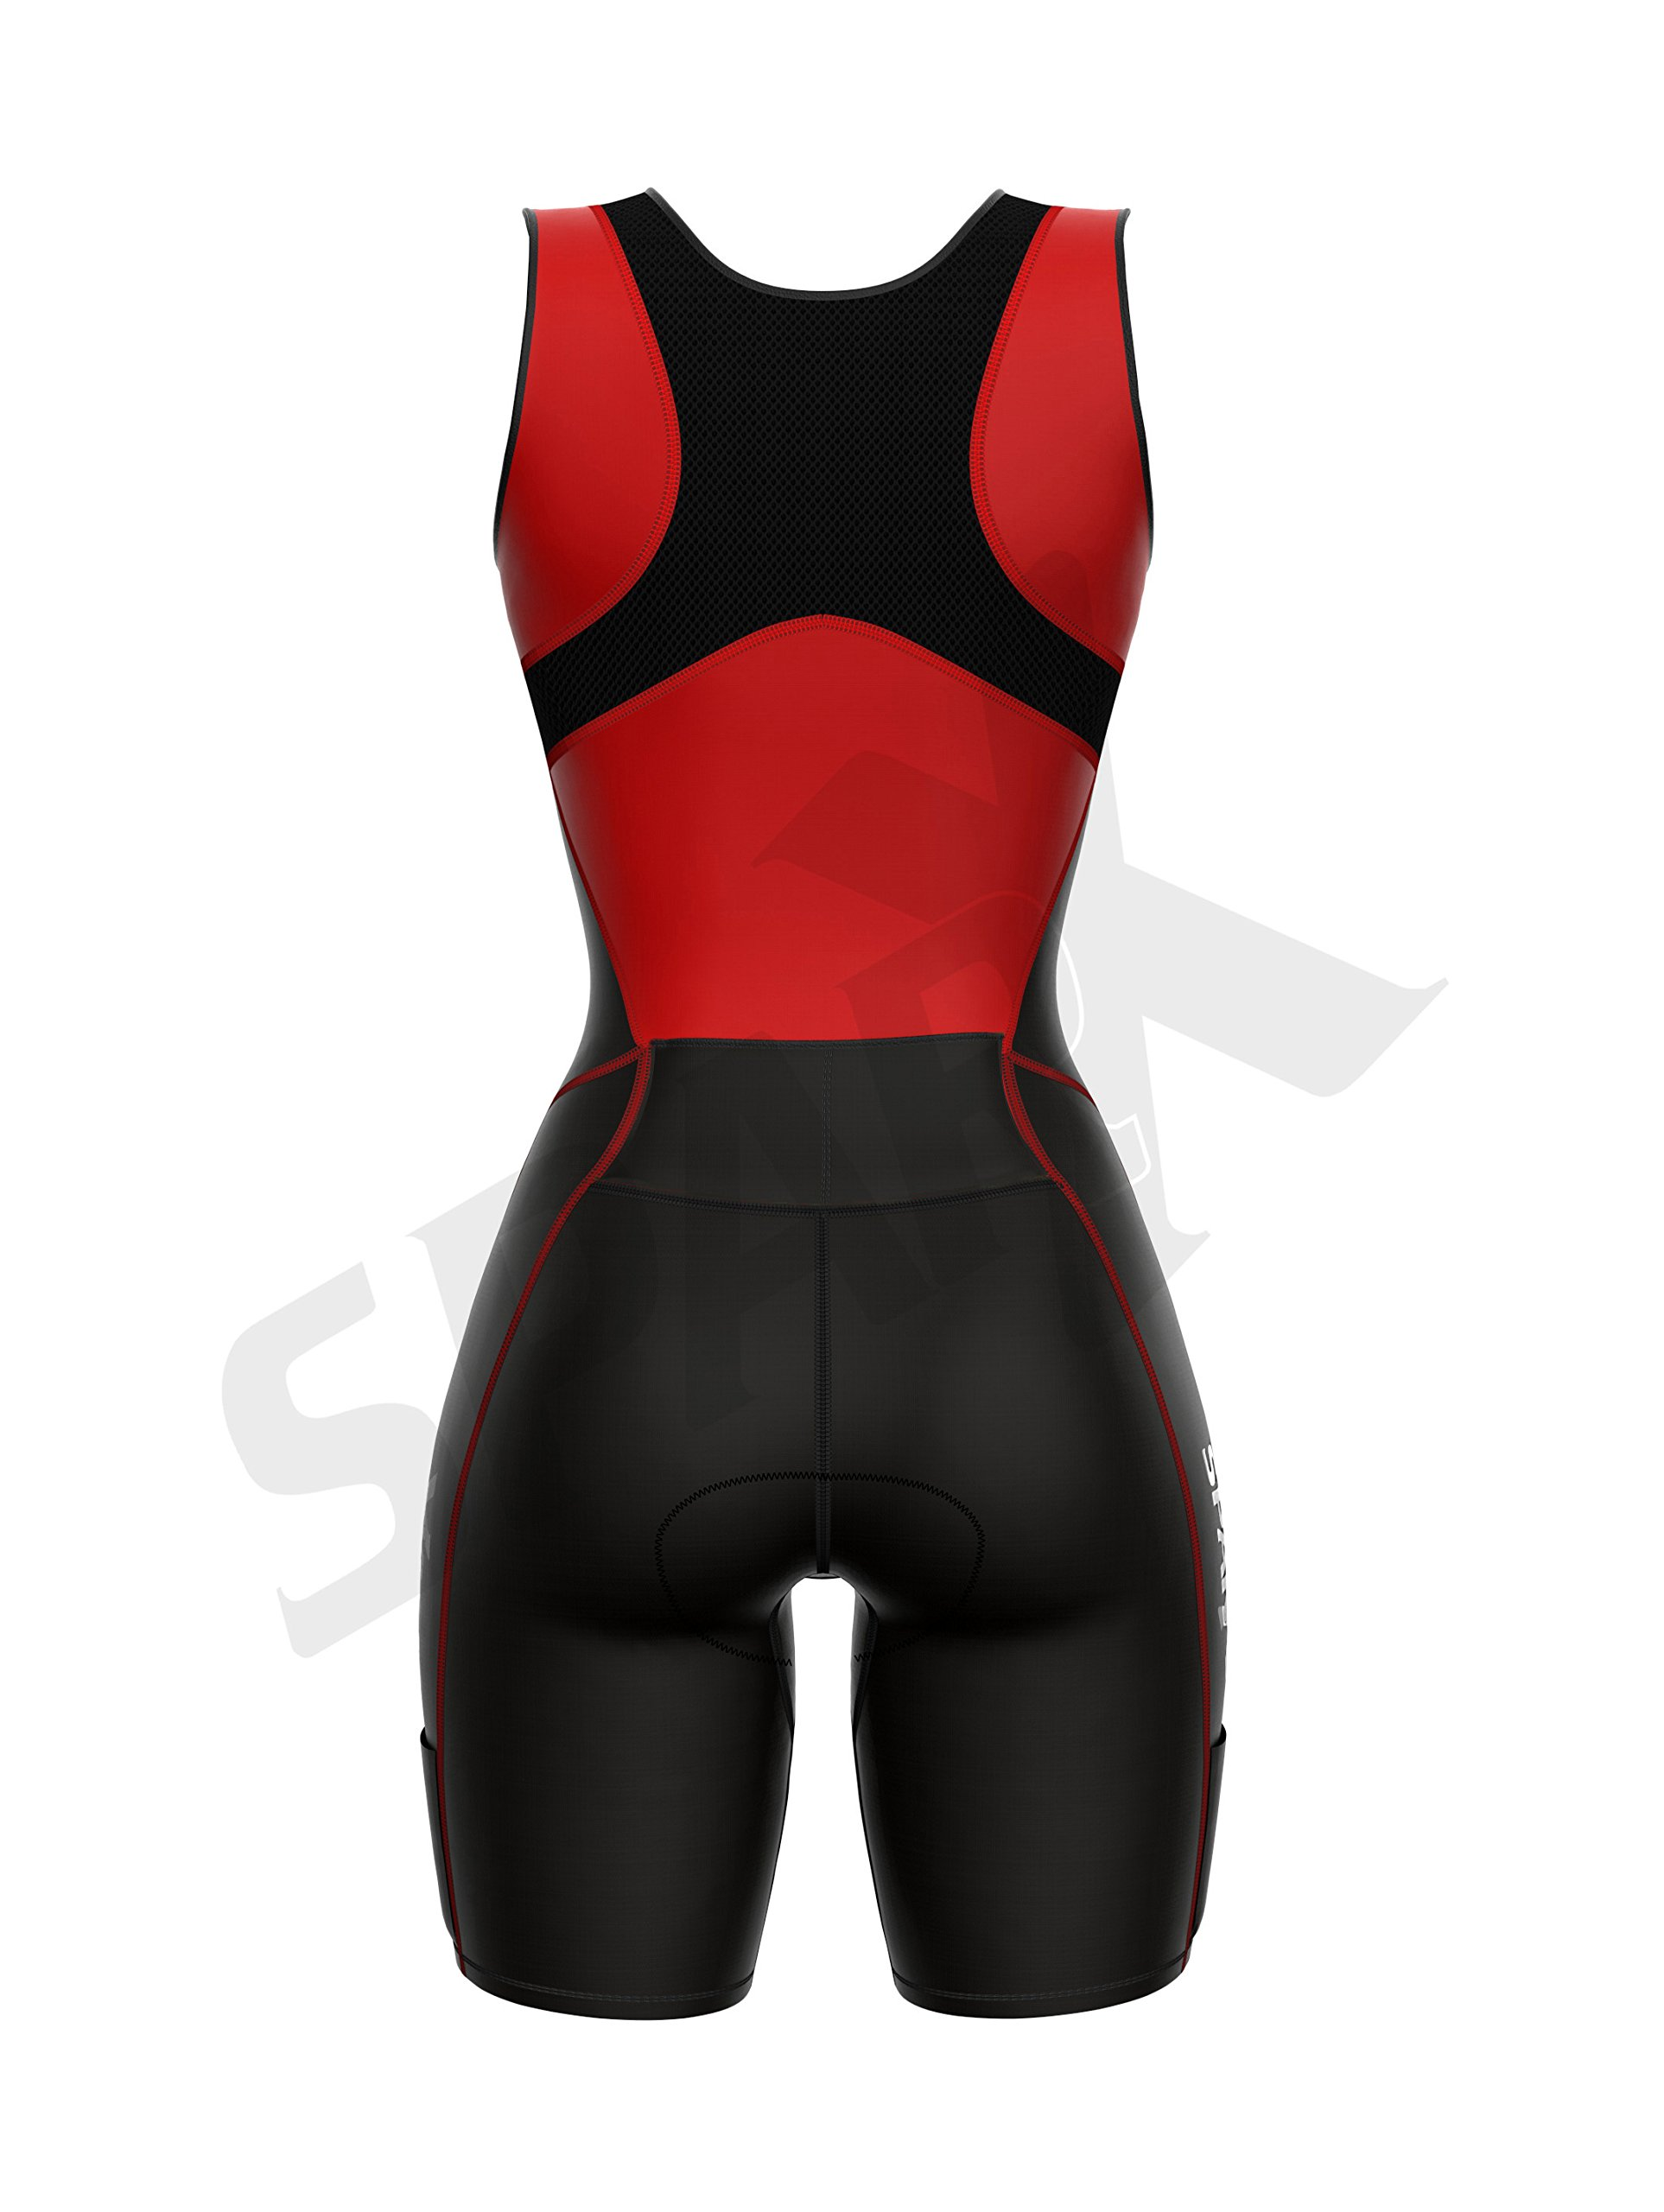 Sparx Women Triathlon Suit Tri Short Racing Cycling Swim Run (Small, Red) by Sparx Sports (Image #5)